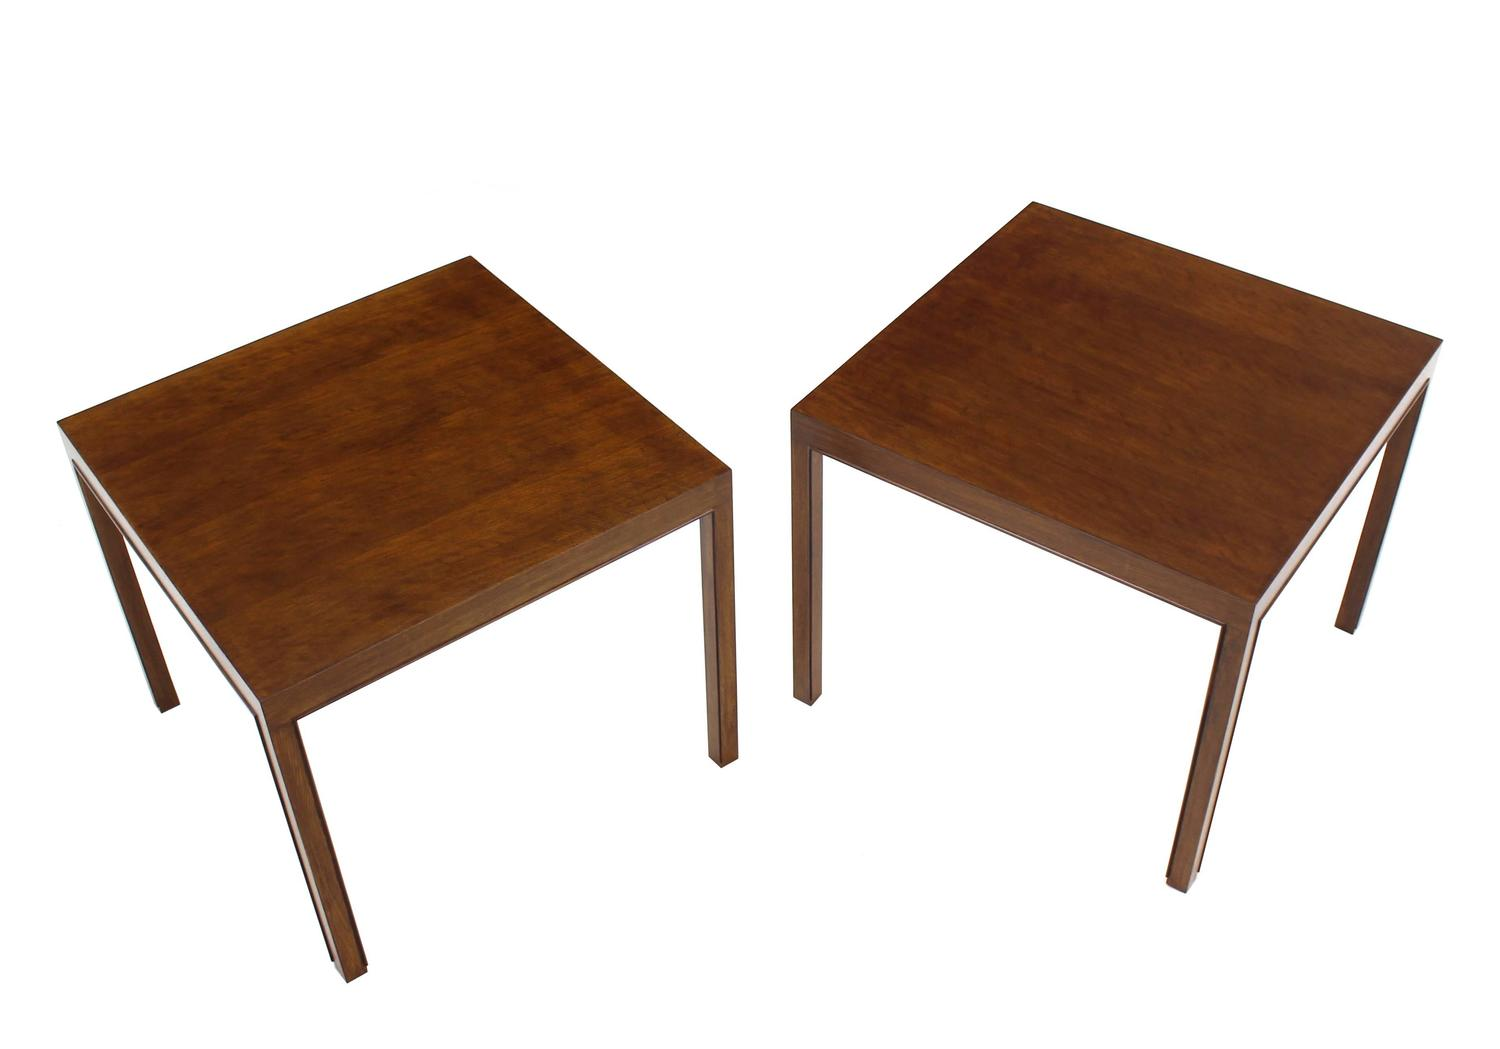 Pair Of Large Square Lamp End Tables By Dunbar For Sale At